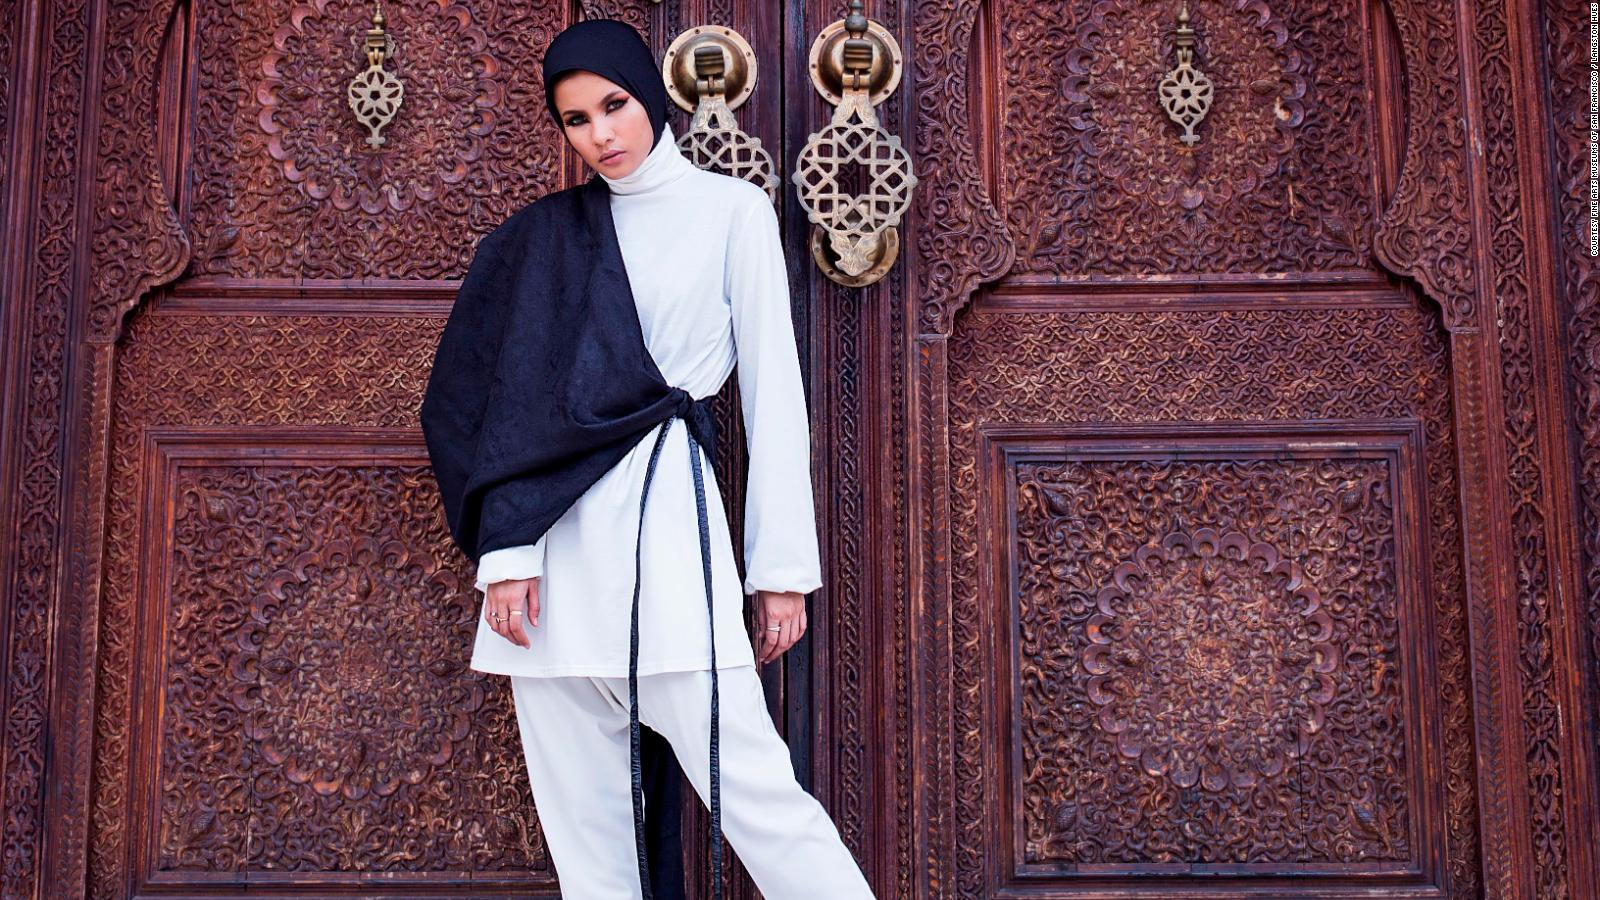 cc97a1e8b7 Why mainstream brands are embracing modest fashion - CNN Style